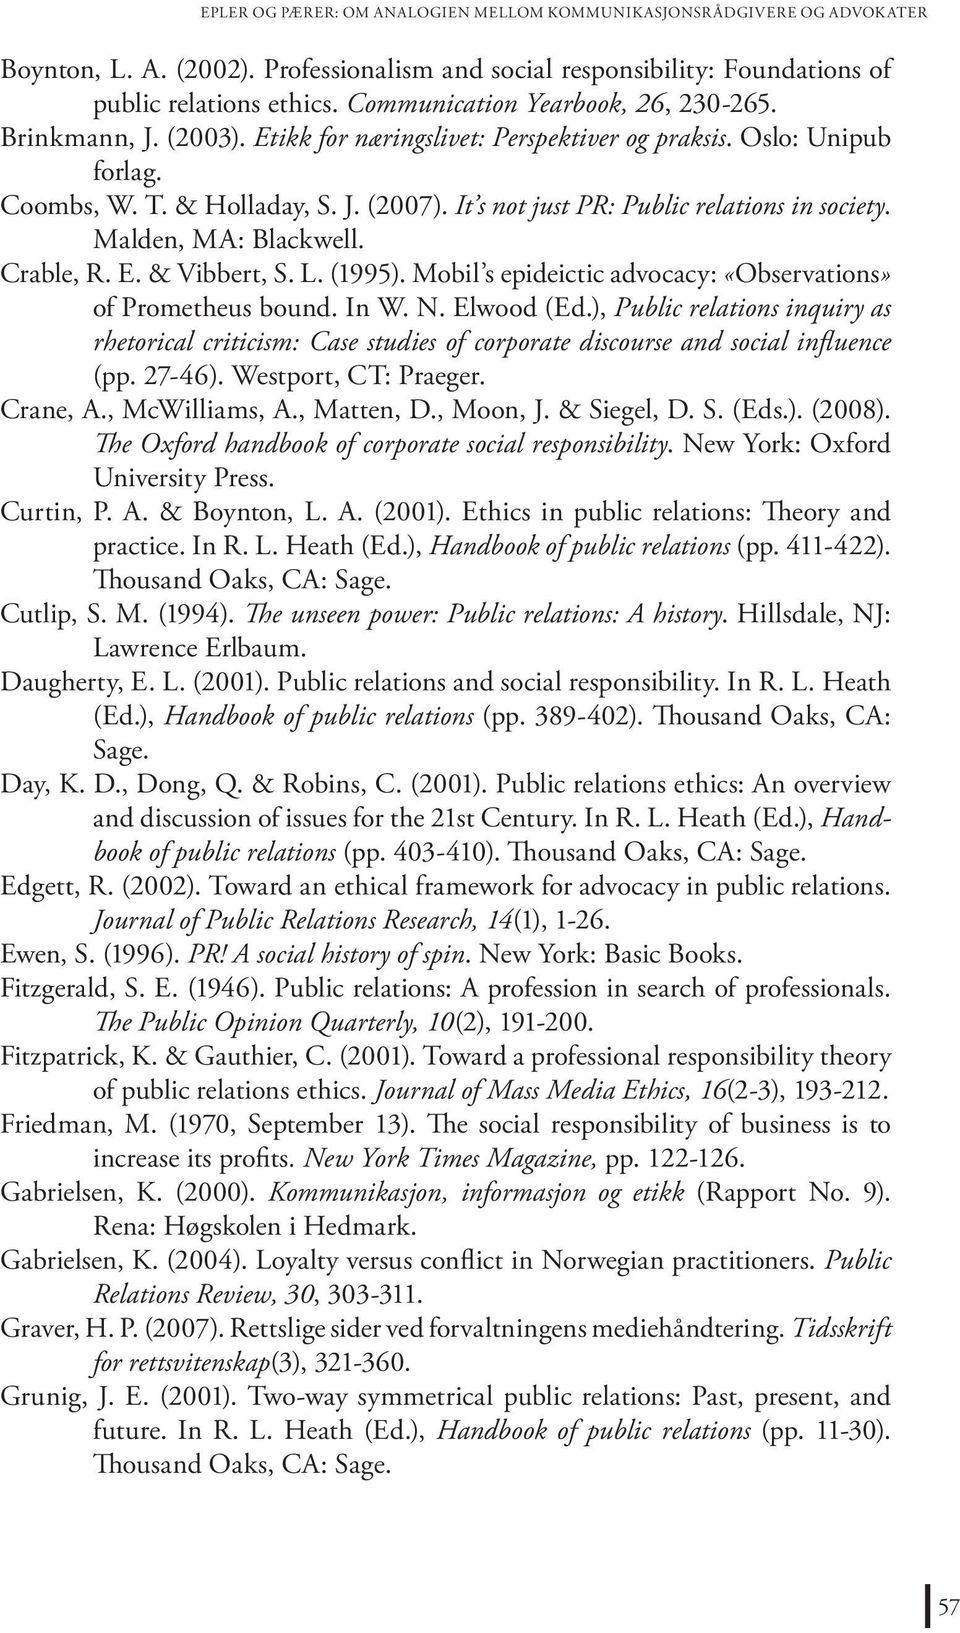 It s not just PR: Public relations in society. Malden, MA: Blackwell. Crable, R. E. & Vibbert, S. L. (1995). Mobil s epideictic advocacy: «Observations» of Prometheus bound. In W. N. Elwood (Ed.